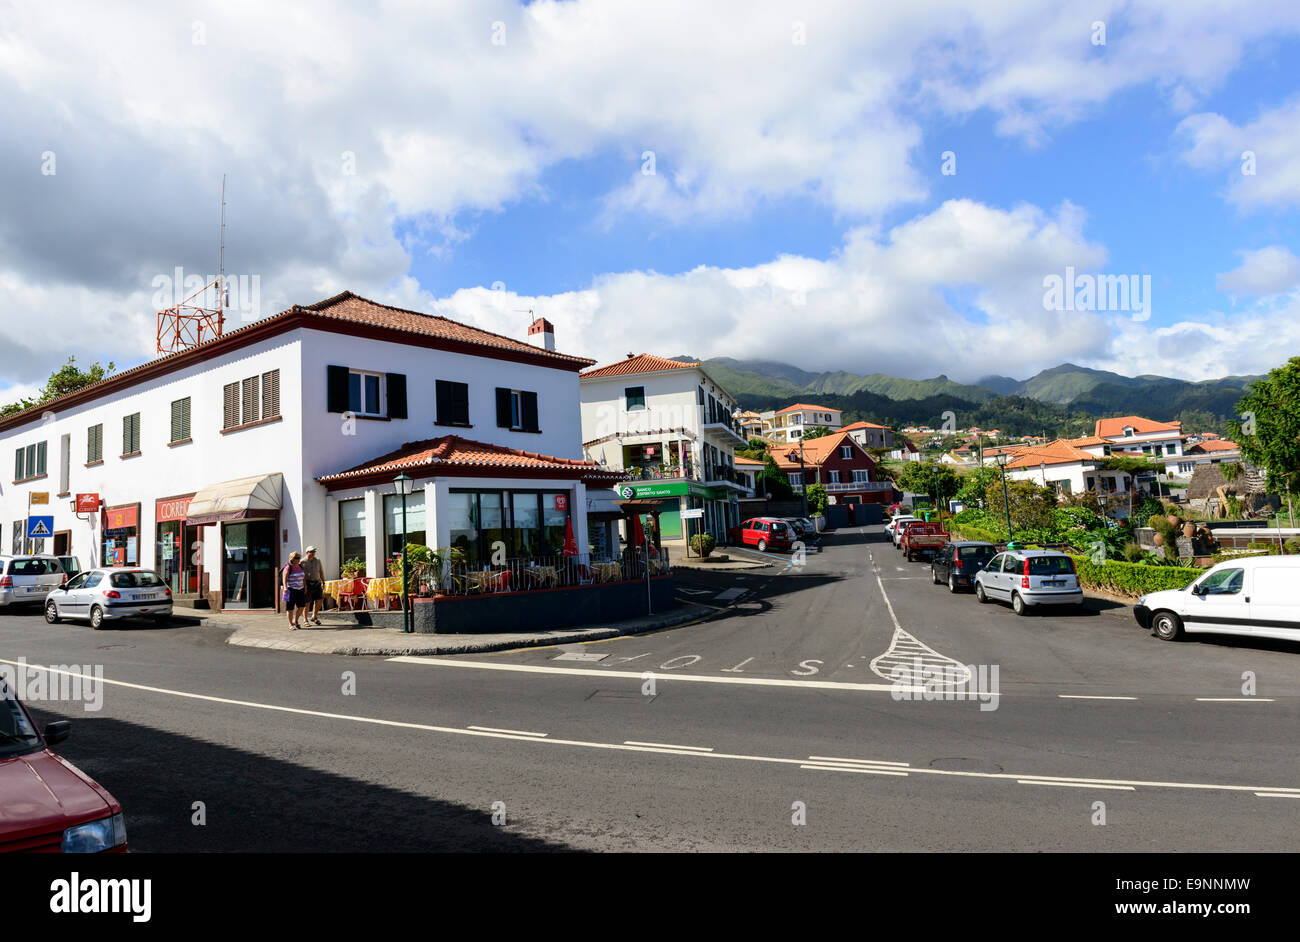 Santana, Madiera, Canary Islands - Stock Image